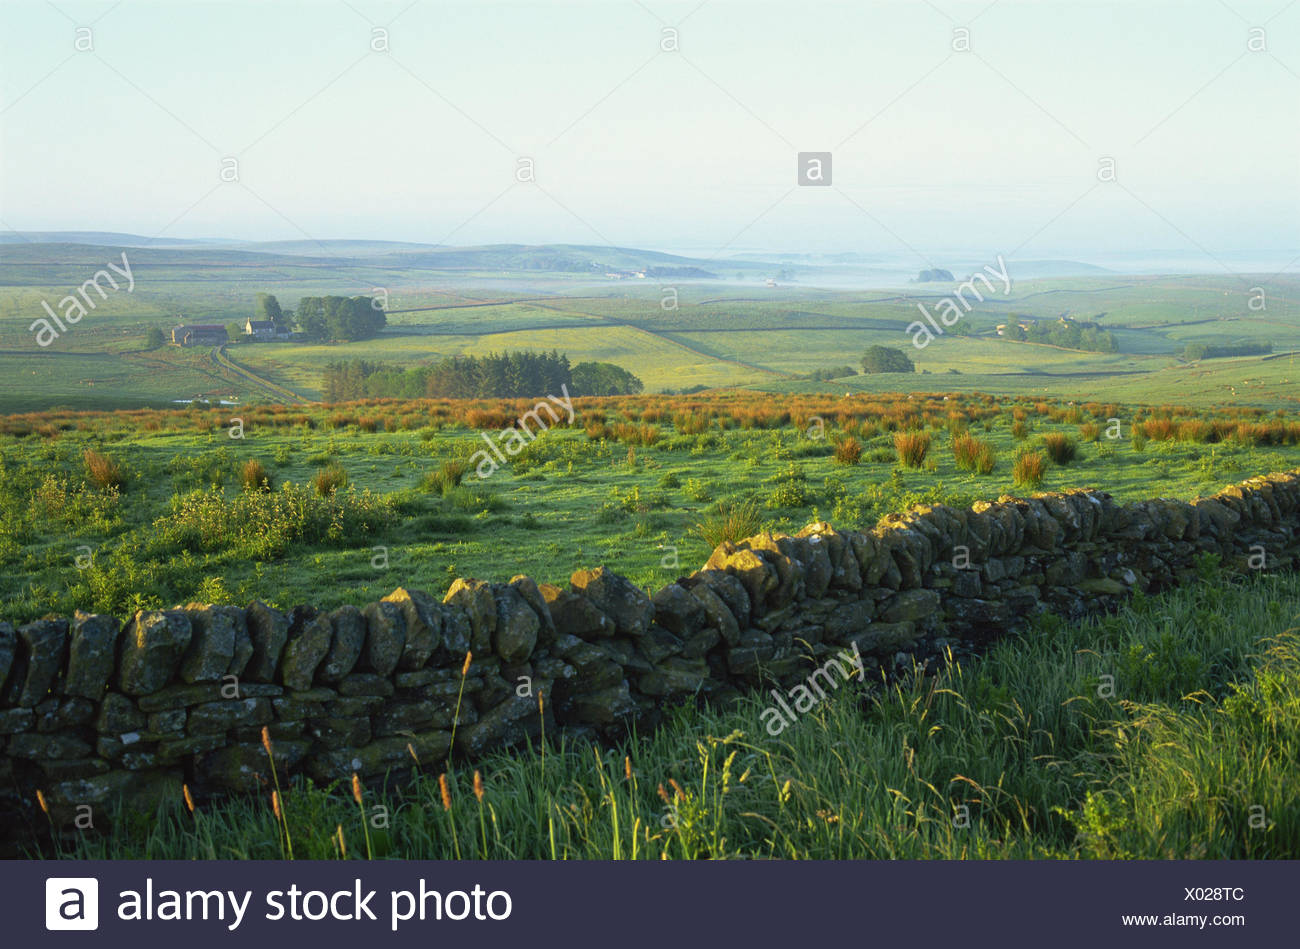 Great Britain, England, Northumbria, scenery, fog, stone defensive wall, morning light, Europe, Northumberland, width, distance, view, meadows, fields, hills, foggy, morning, atmospheric, deserted, meadows, plants, defensive wall, - Stock Image